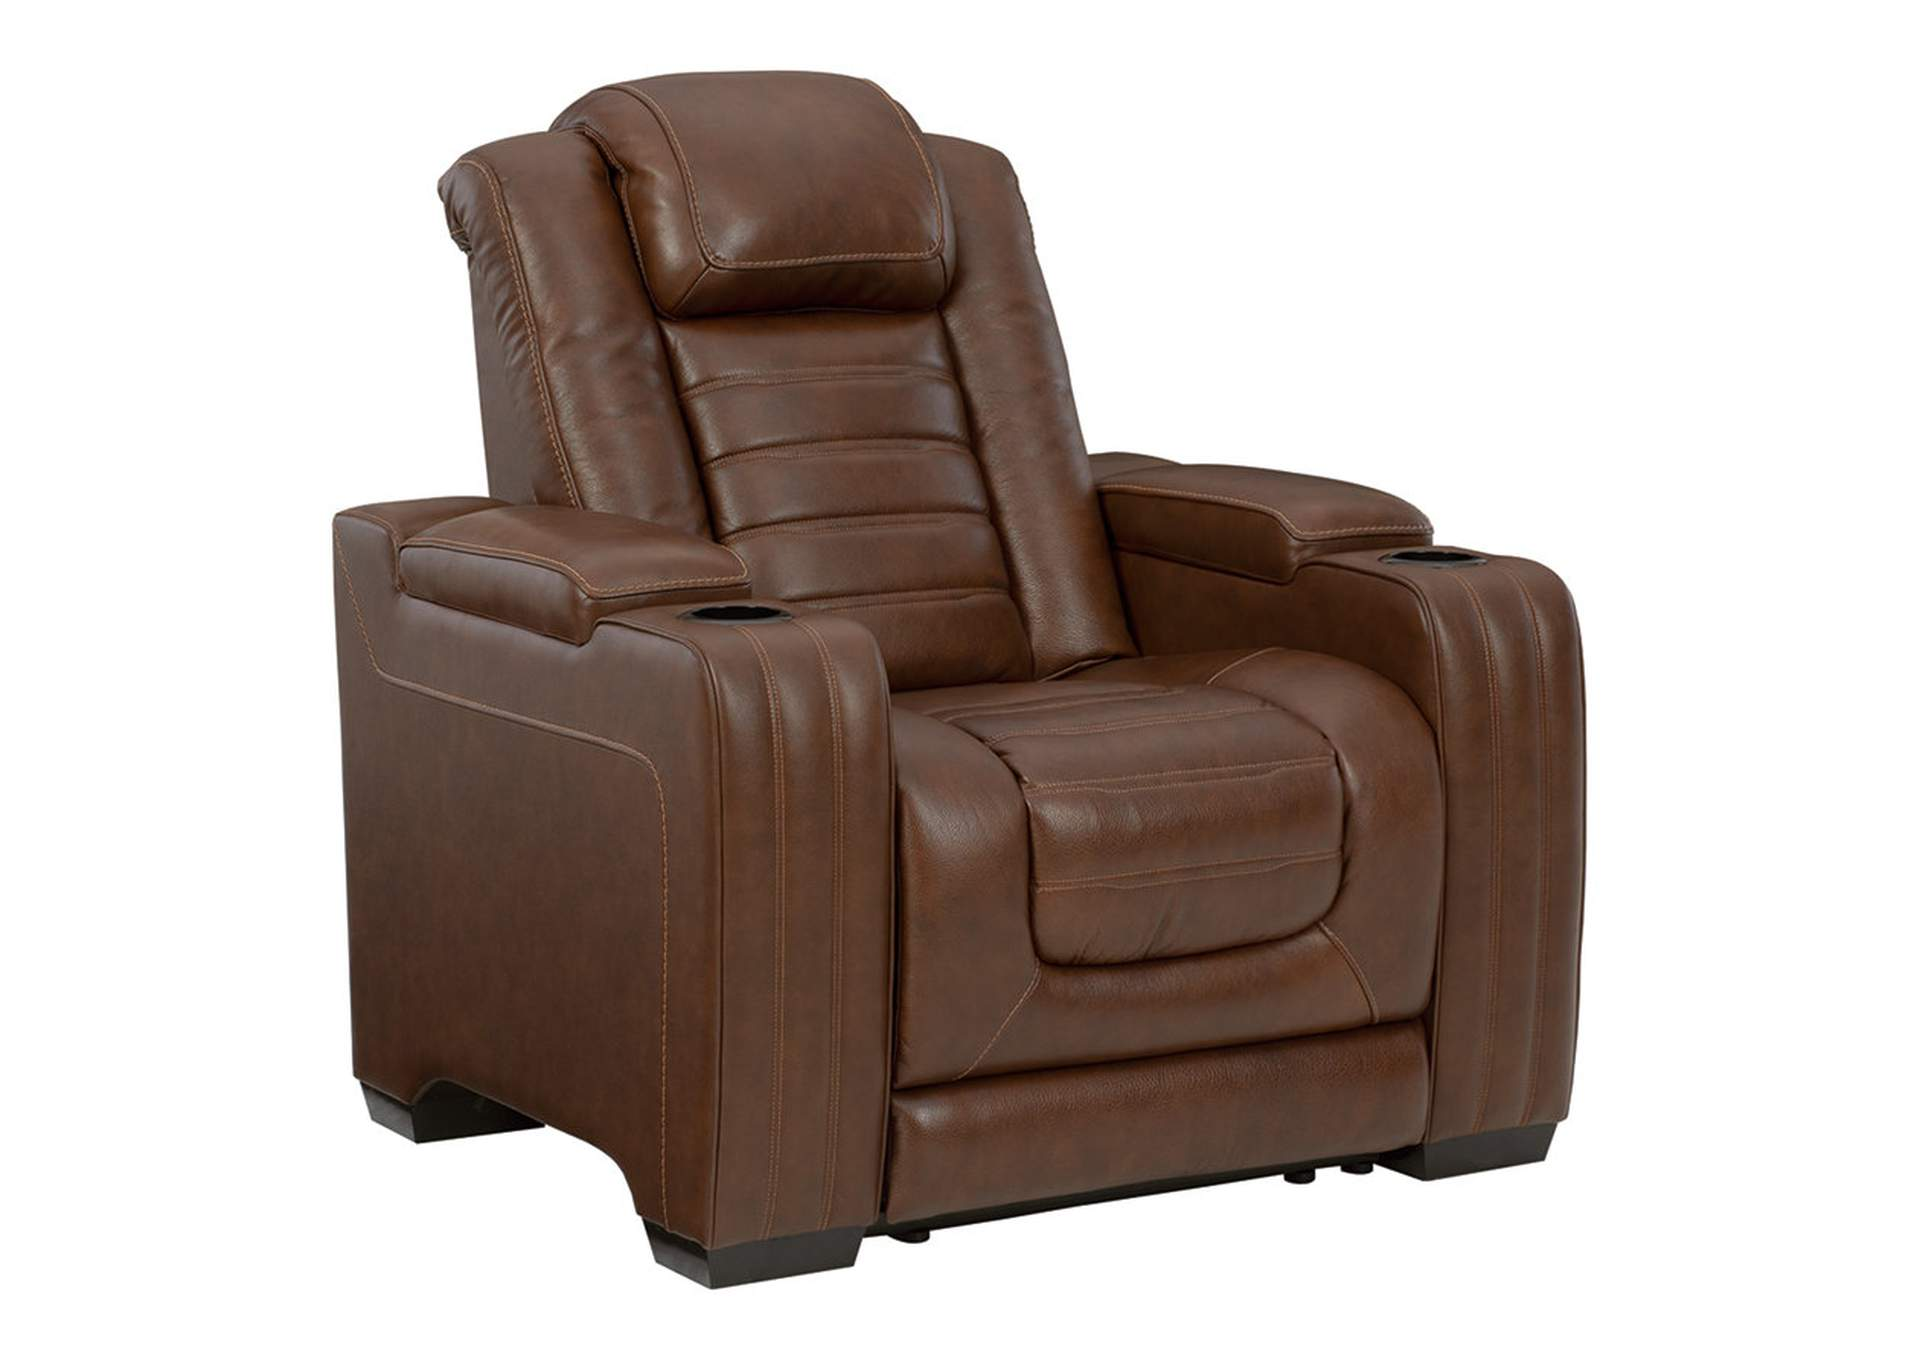 Backtrack Power Recliner,Signature Design By Ashley